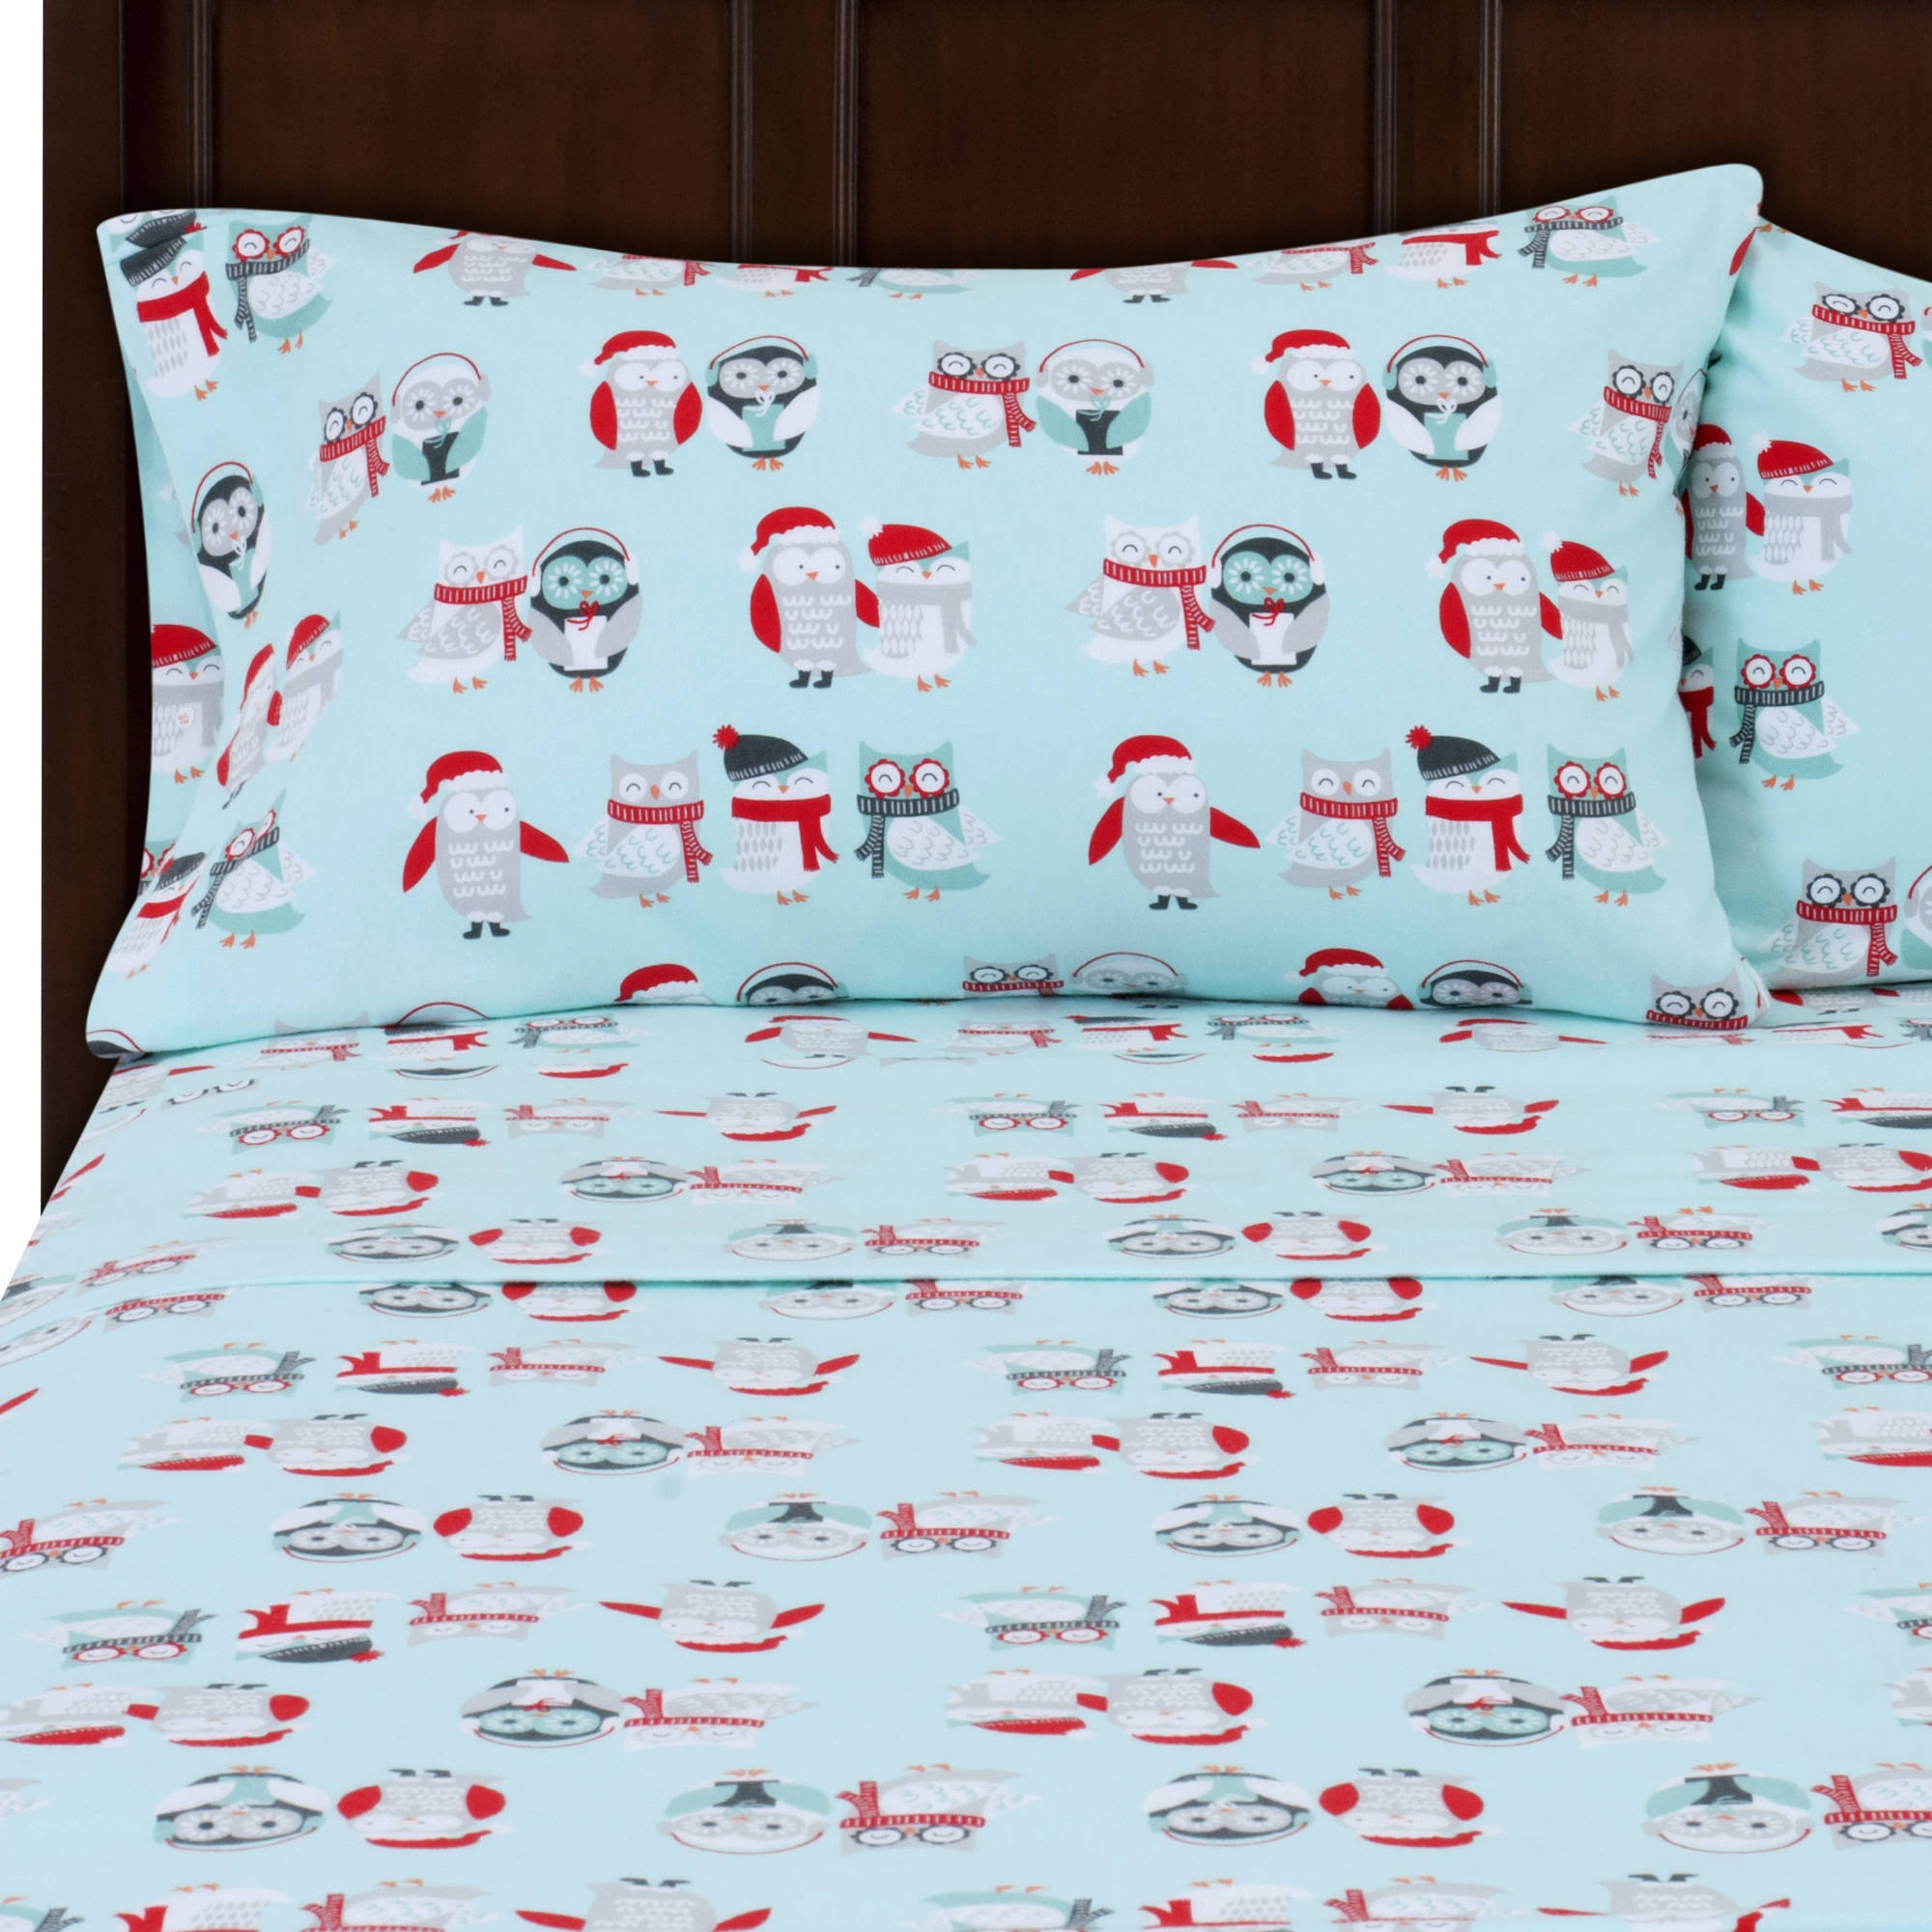 Mainstays Flannel Bedding Sheet Set